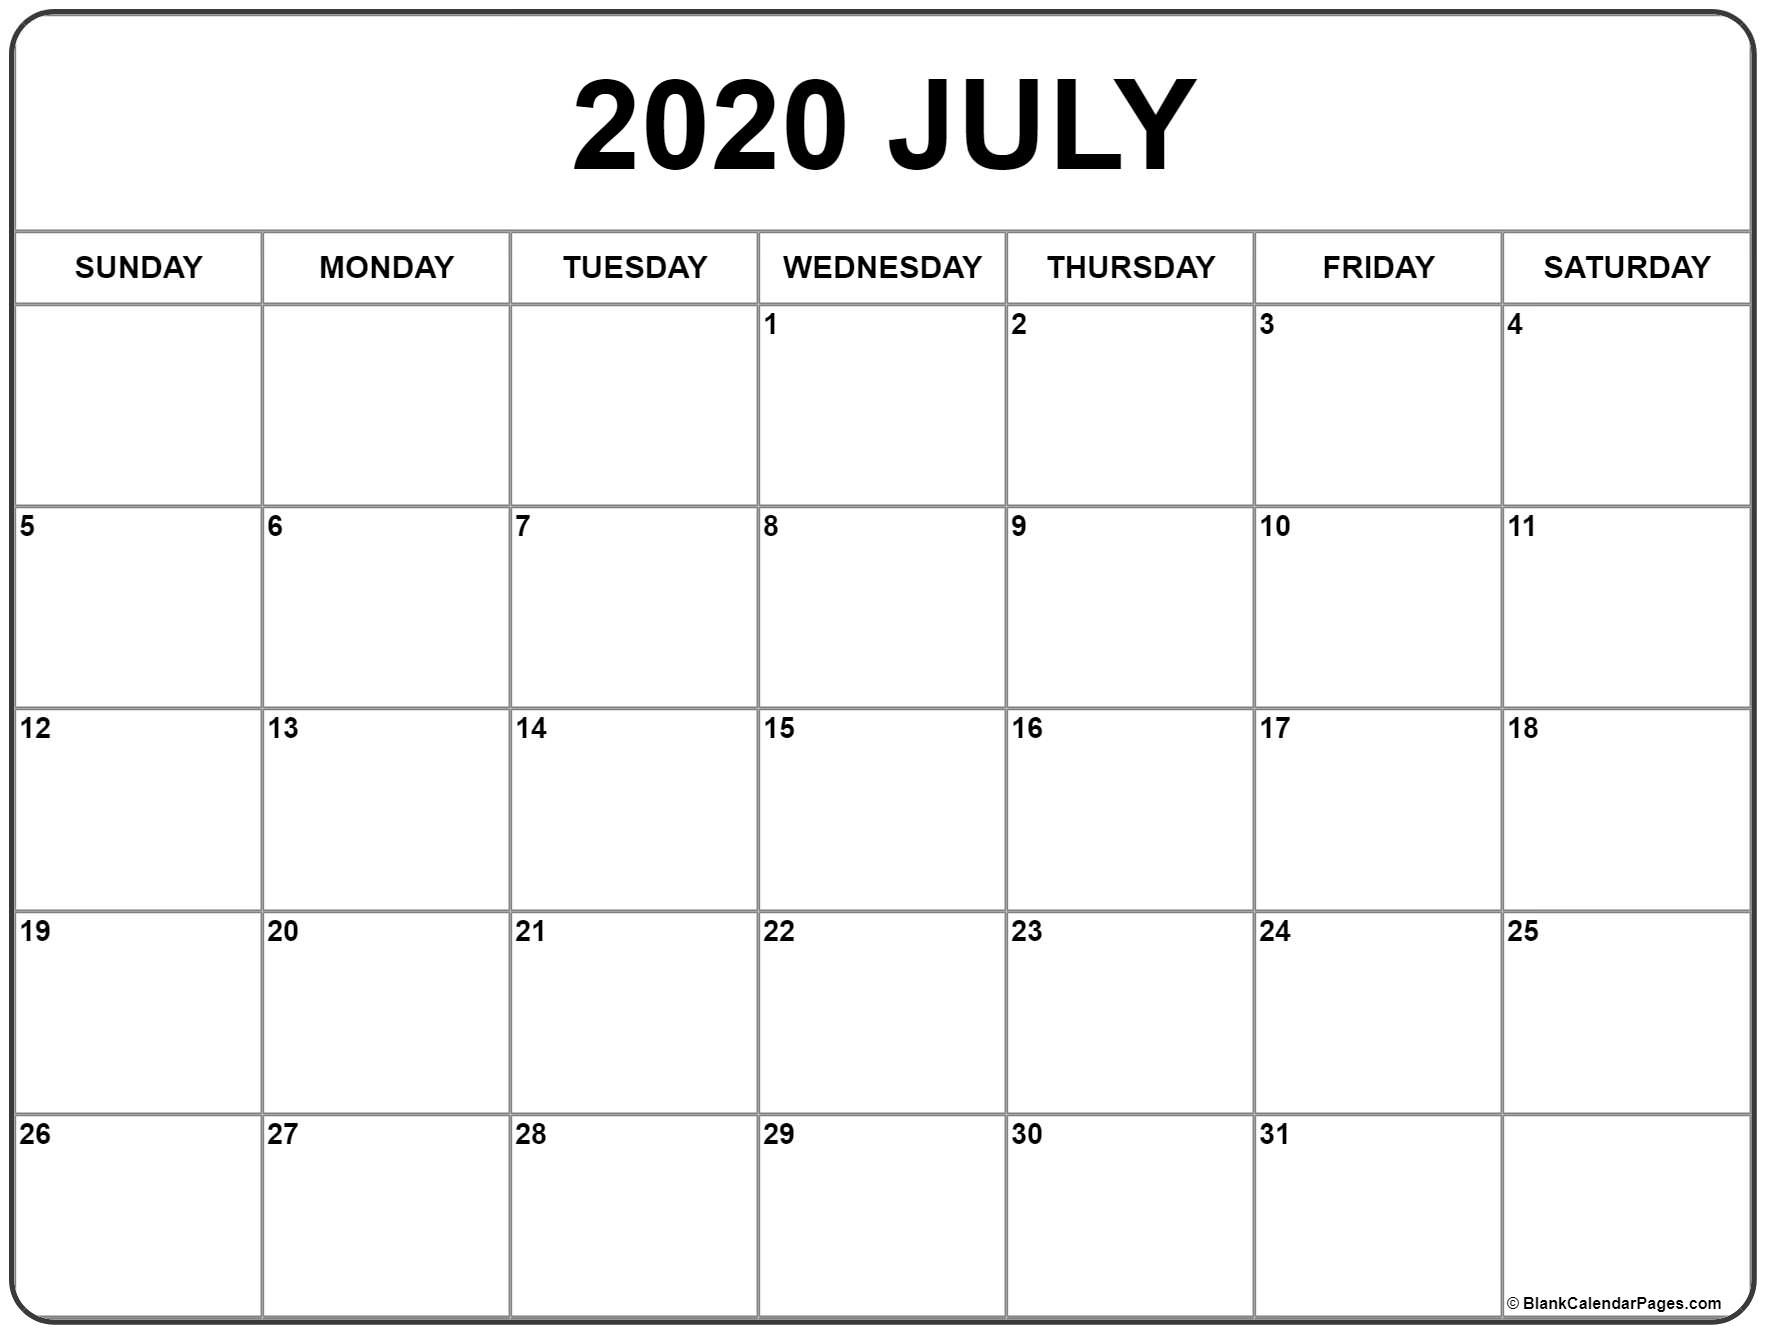 July 2020 Calendar | Free Printable Monthly Calendars-July/august Calendar 2020 Monthly